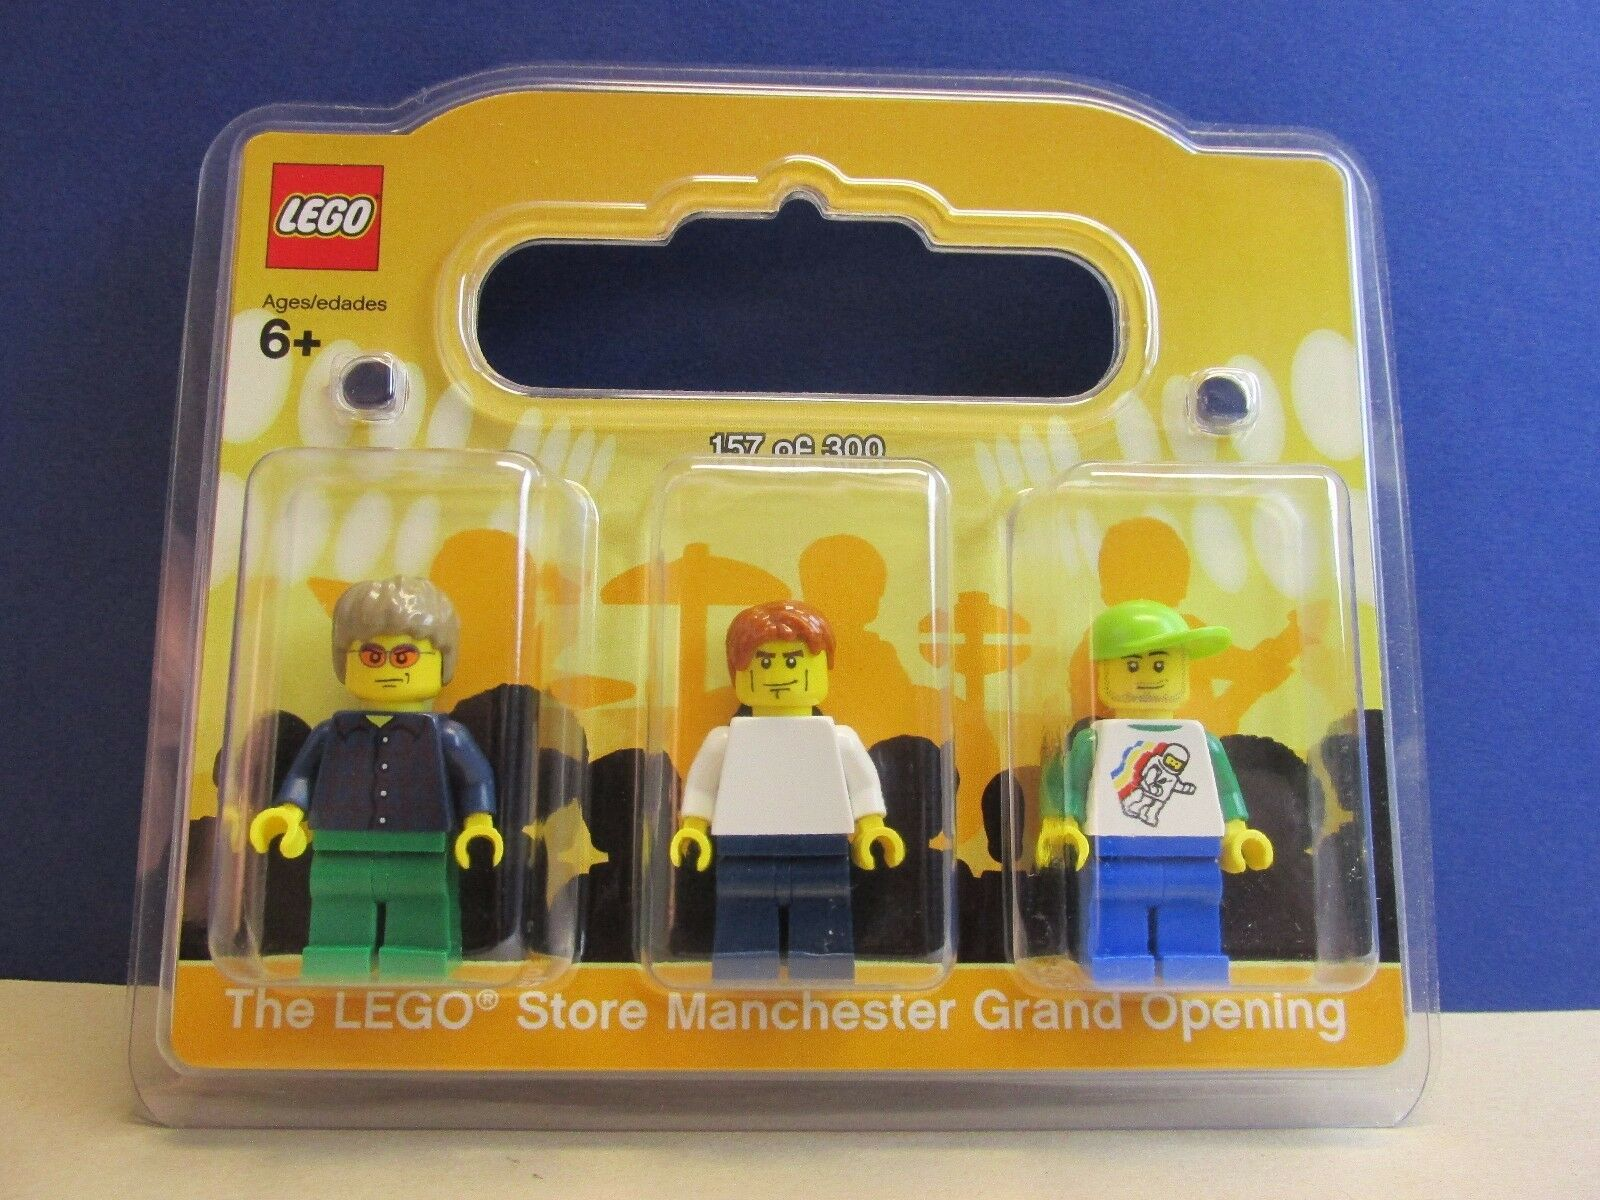 Lego OASIS NOEL LIAM GALLAGHER minifigure MANCHESTER STORE rare like mr gold 157